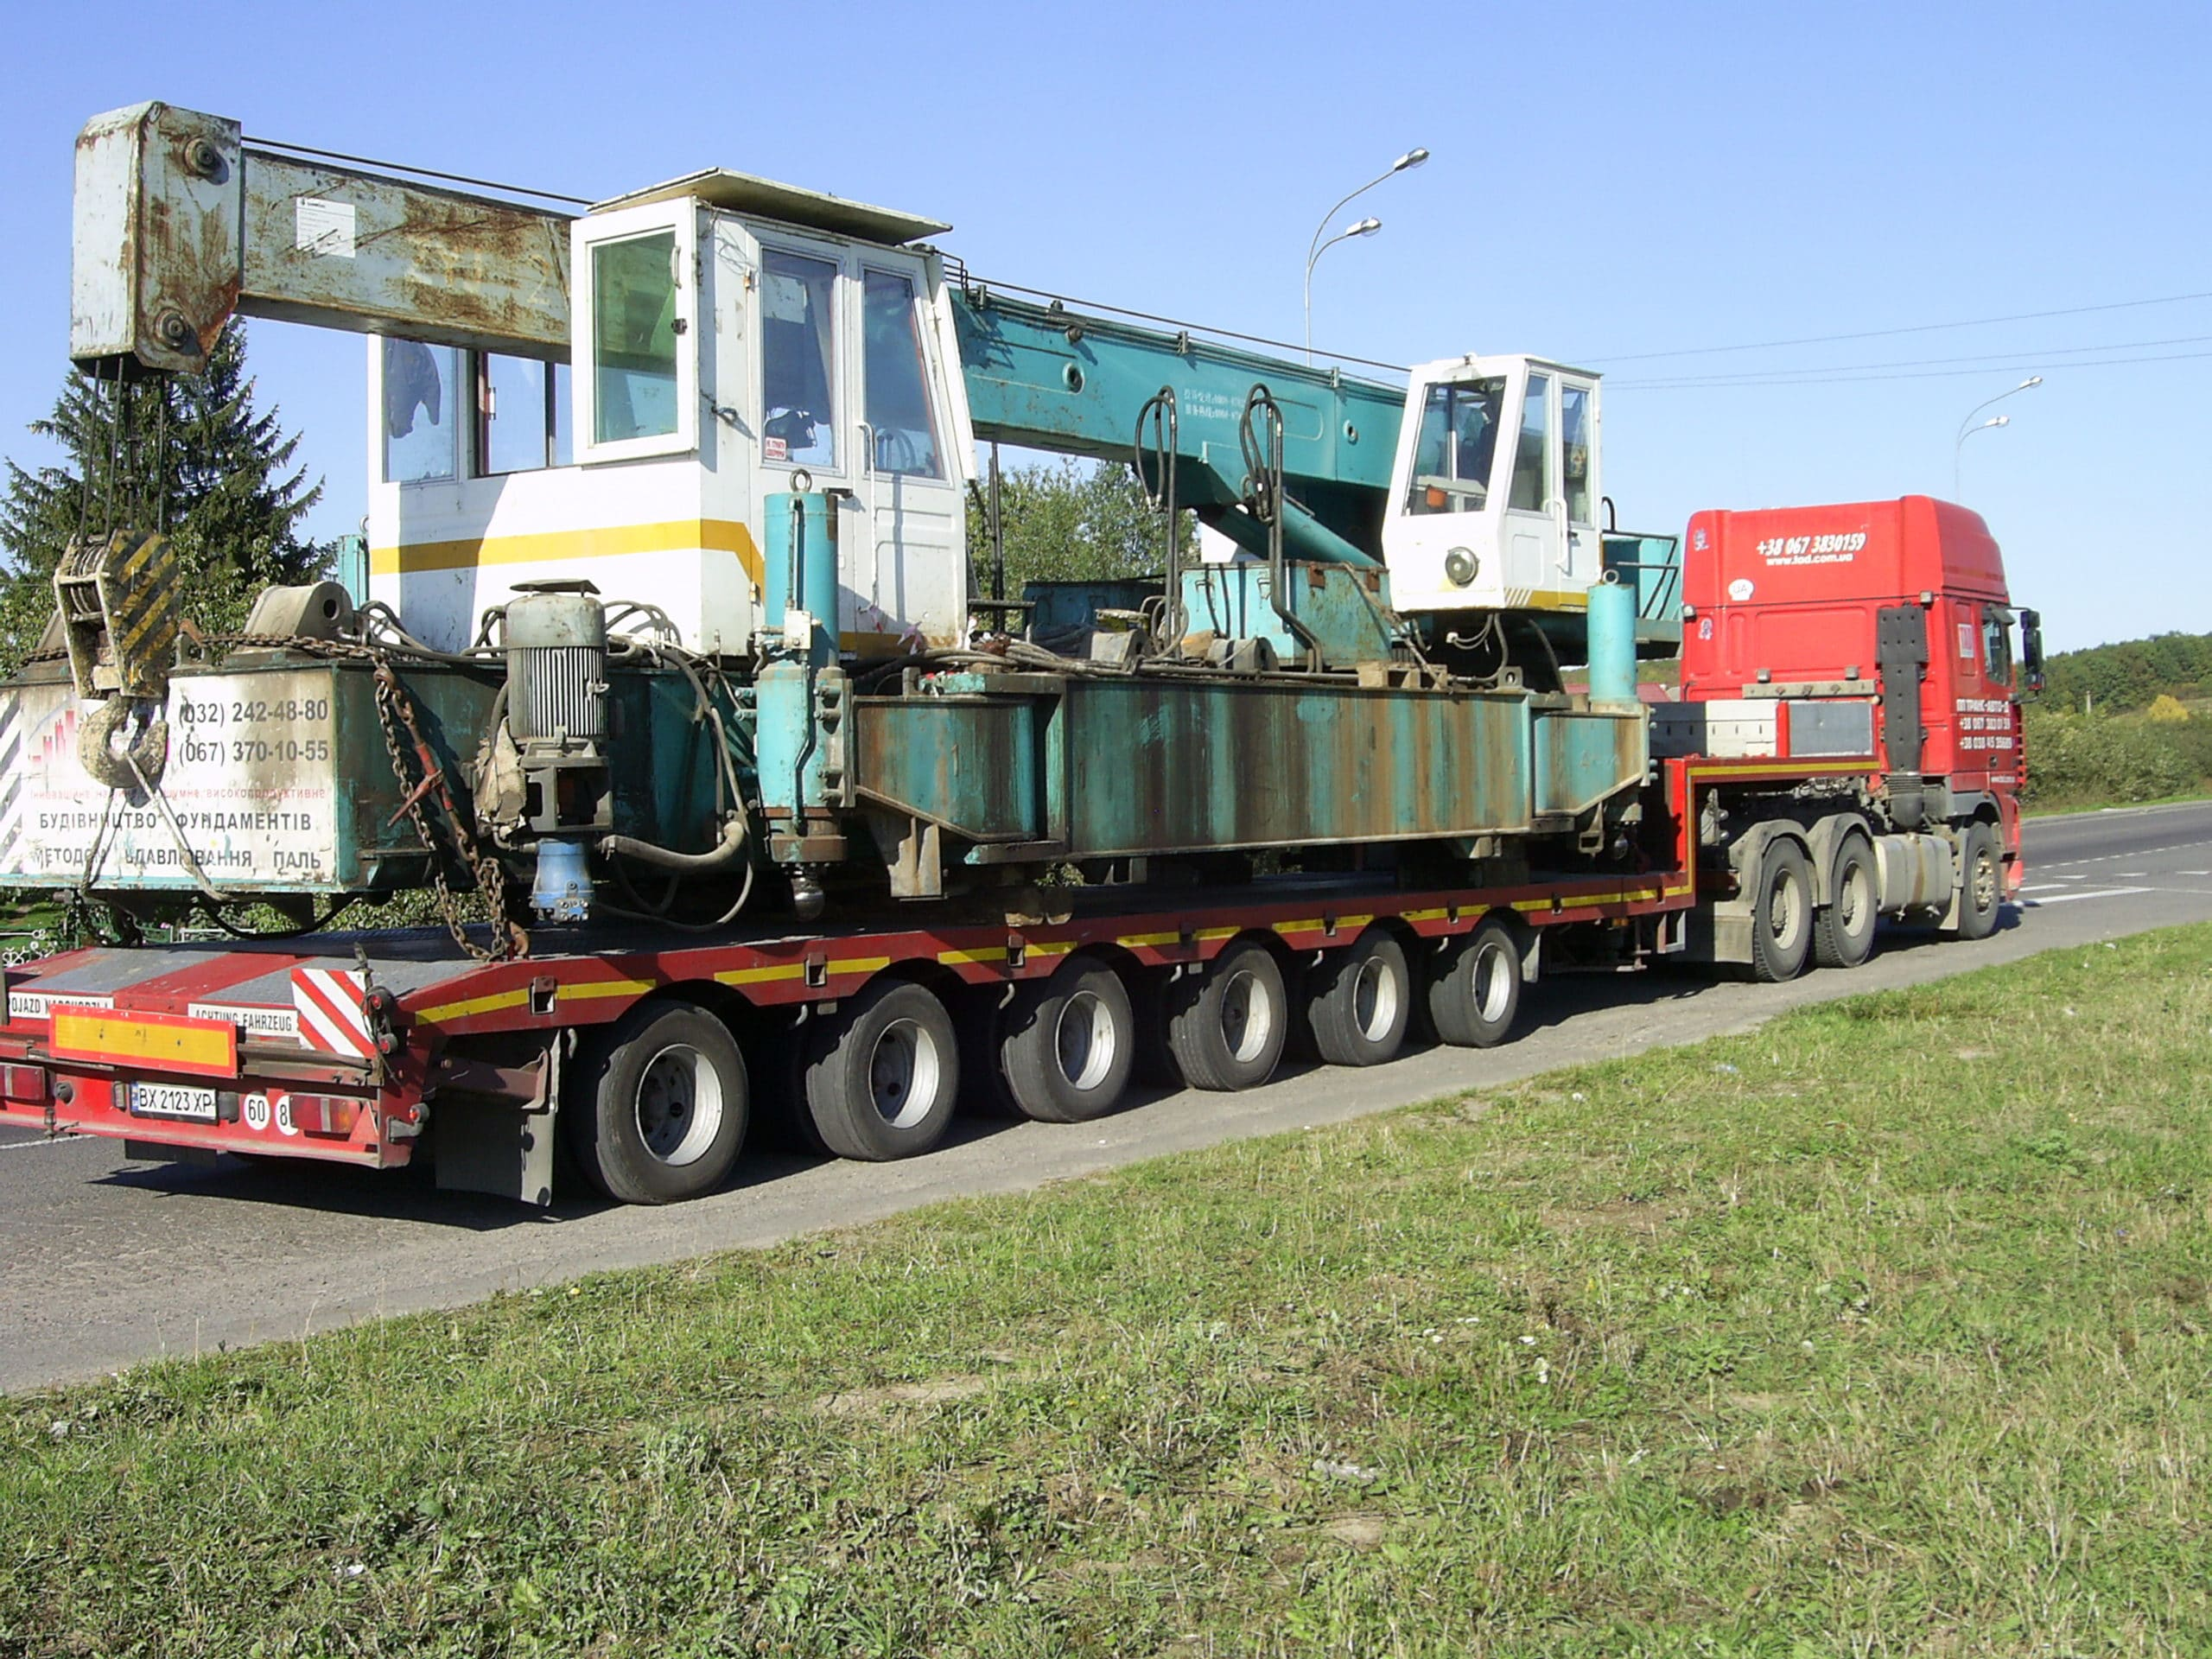 Rail crane transportation